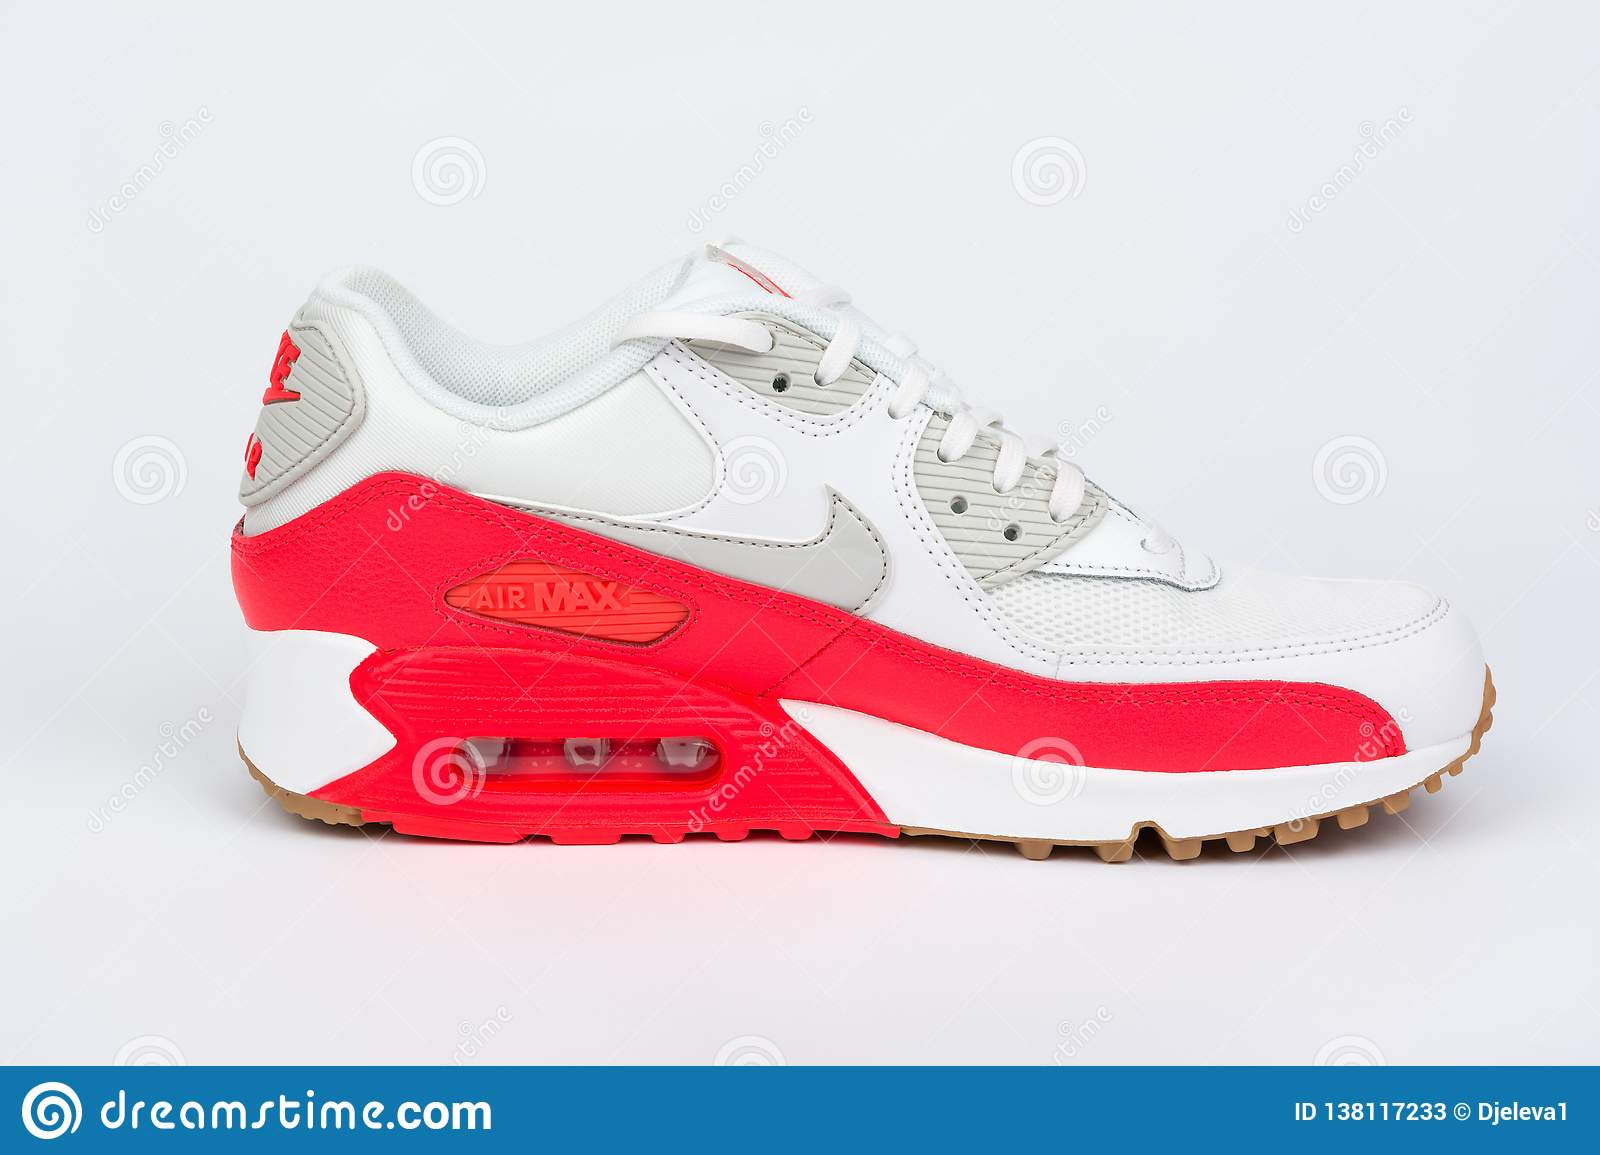 2f9042bd BURGAS, BULGARIA - AUGUST 30, 2016: Nike Air MAX women`s shoes - sneakers -  trainers in white and orange on white background. Editorial Stock Photo